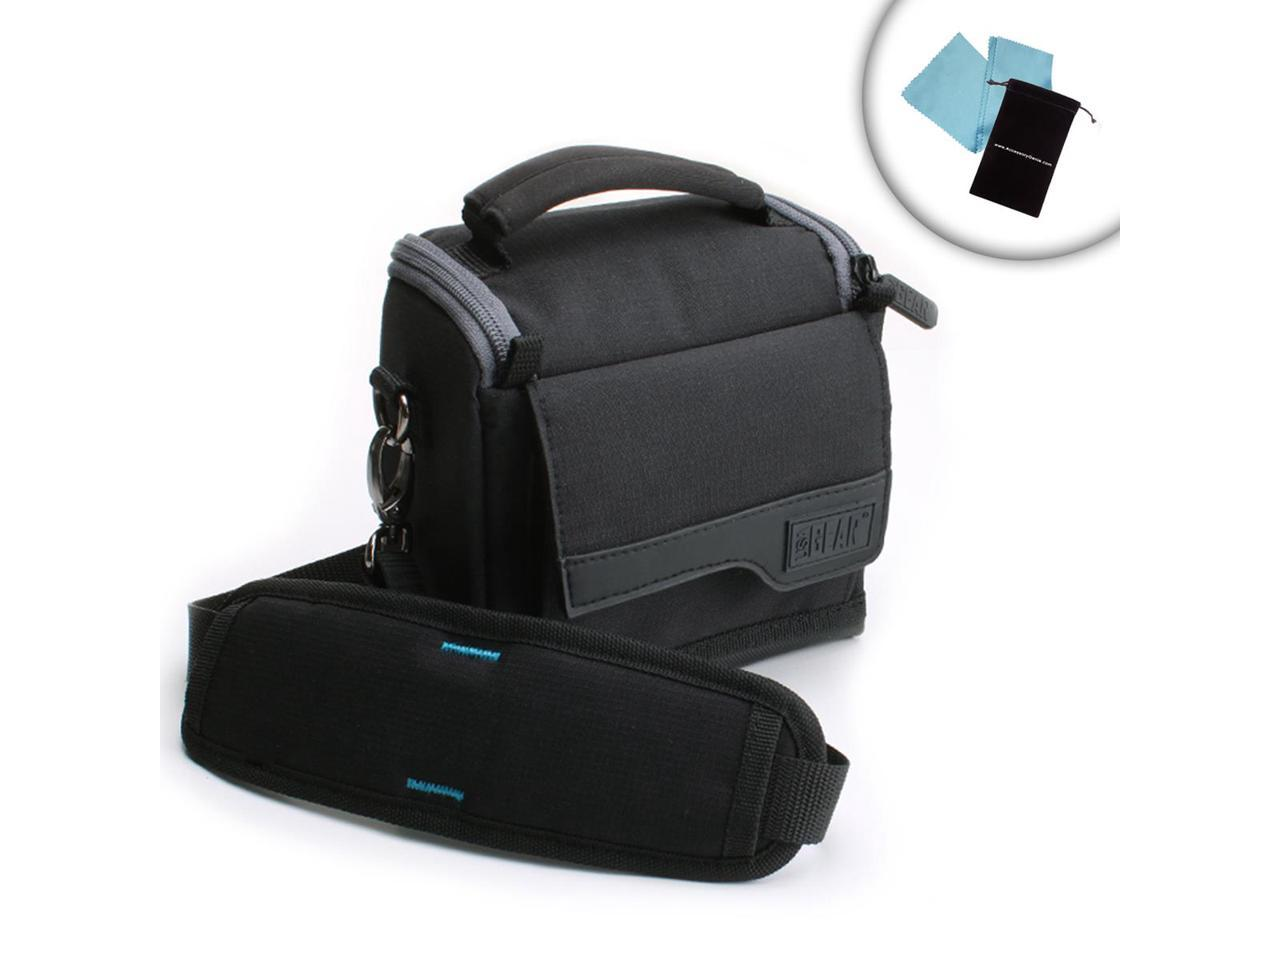 Canon Vixia and More Shoulder Strap and Ripstop Nylon Compatible with HF R800 USA Gear Camcorder Case with Protective Customizable Dividers Accessory Pockets